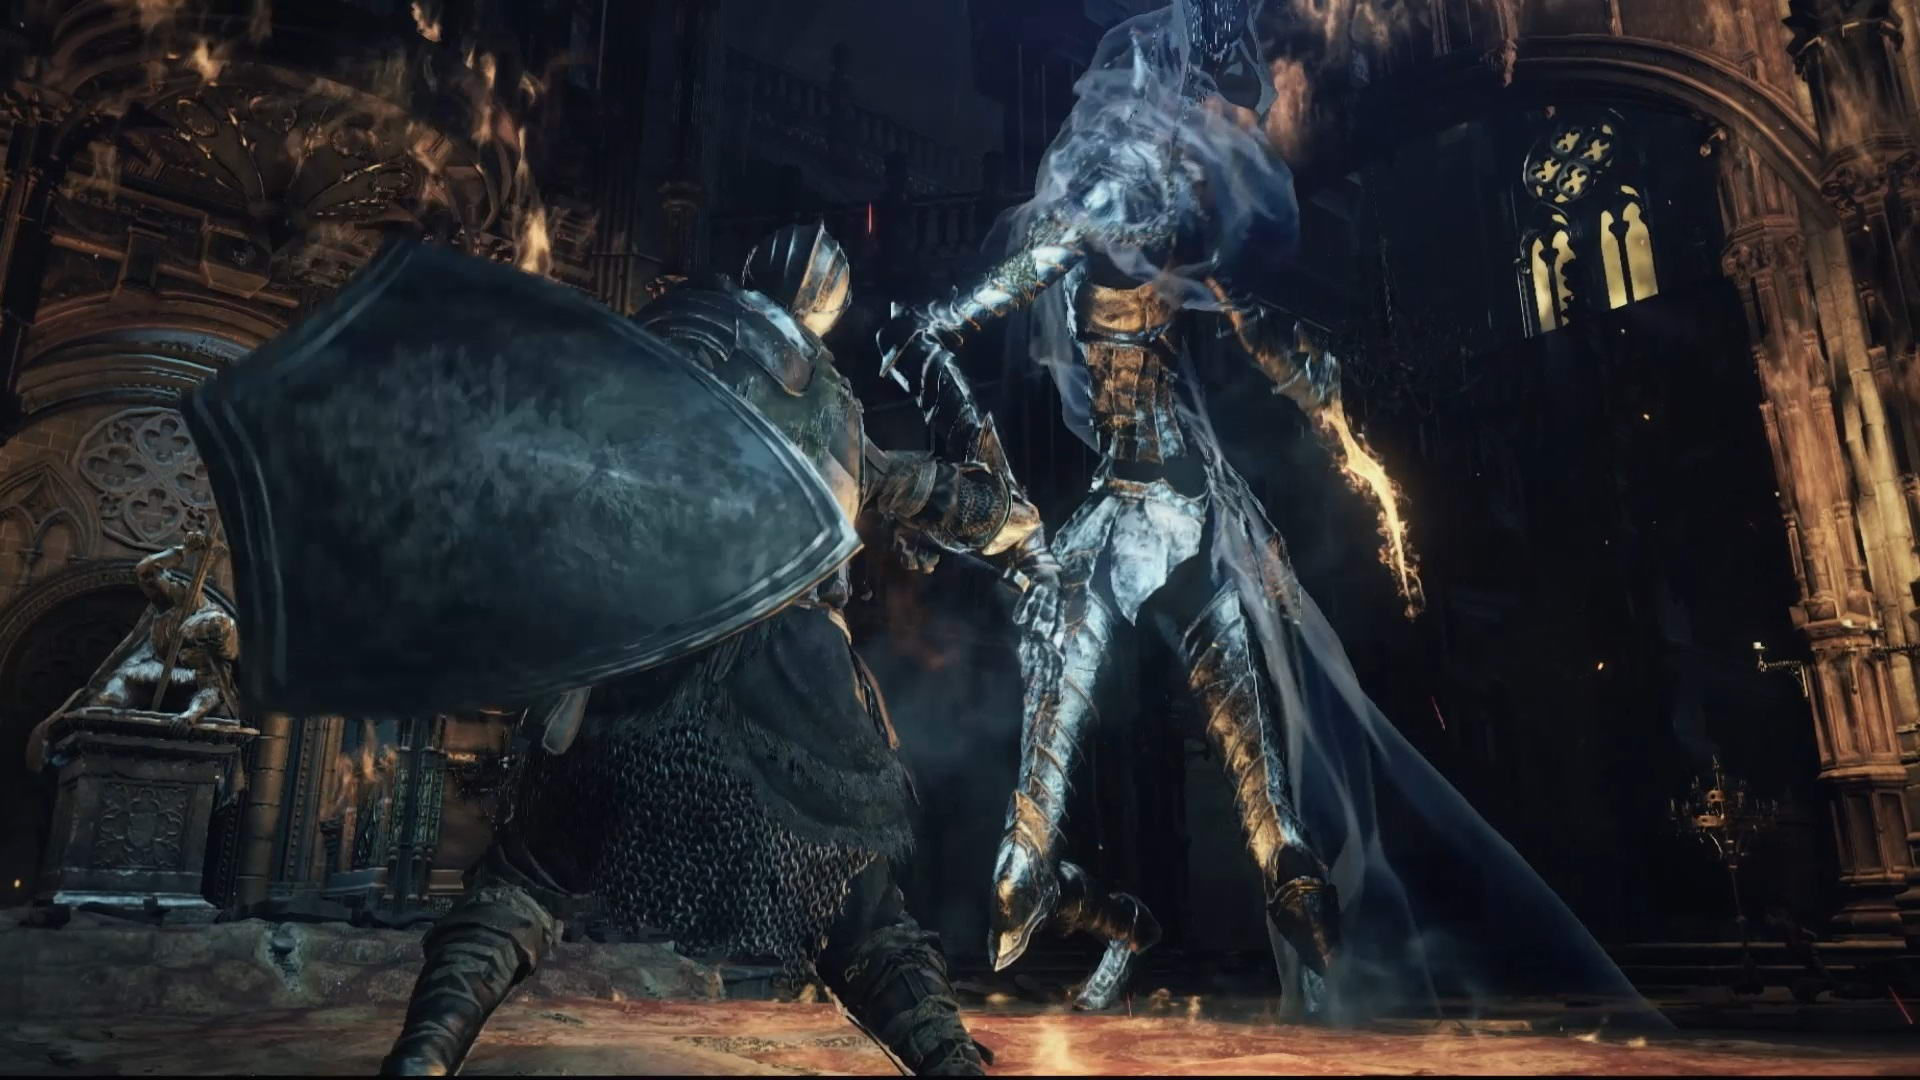 dark_souls_3_wallpaper_42_1920x1080